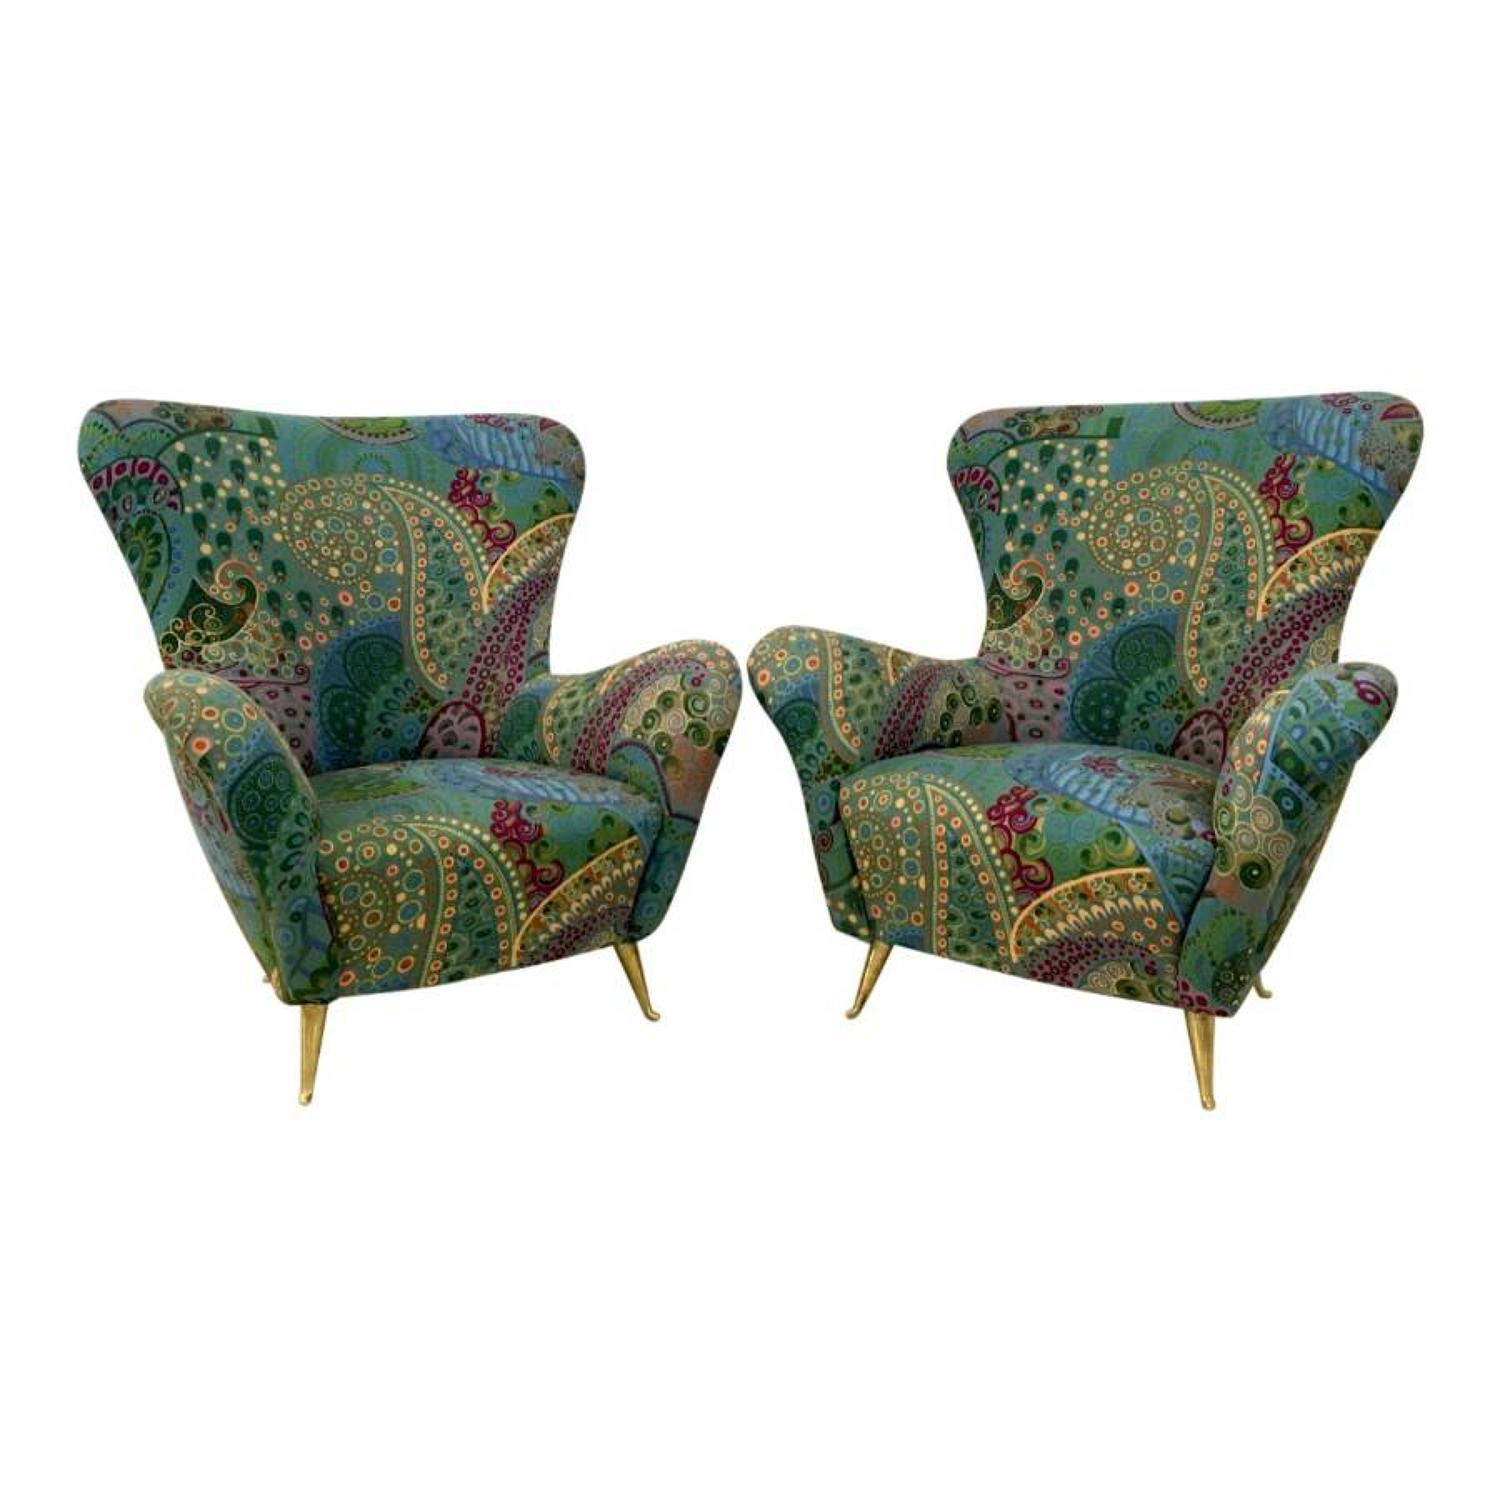 A pair of 1950s Italian armchairs with brass legs